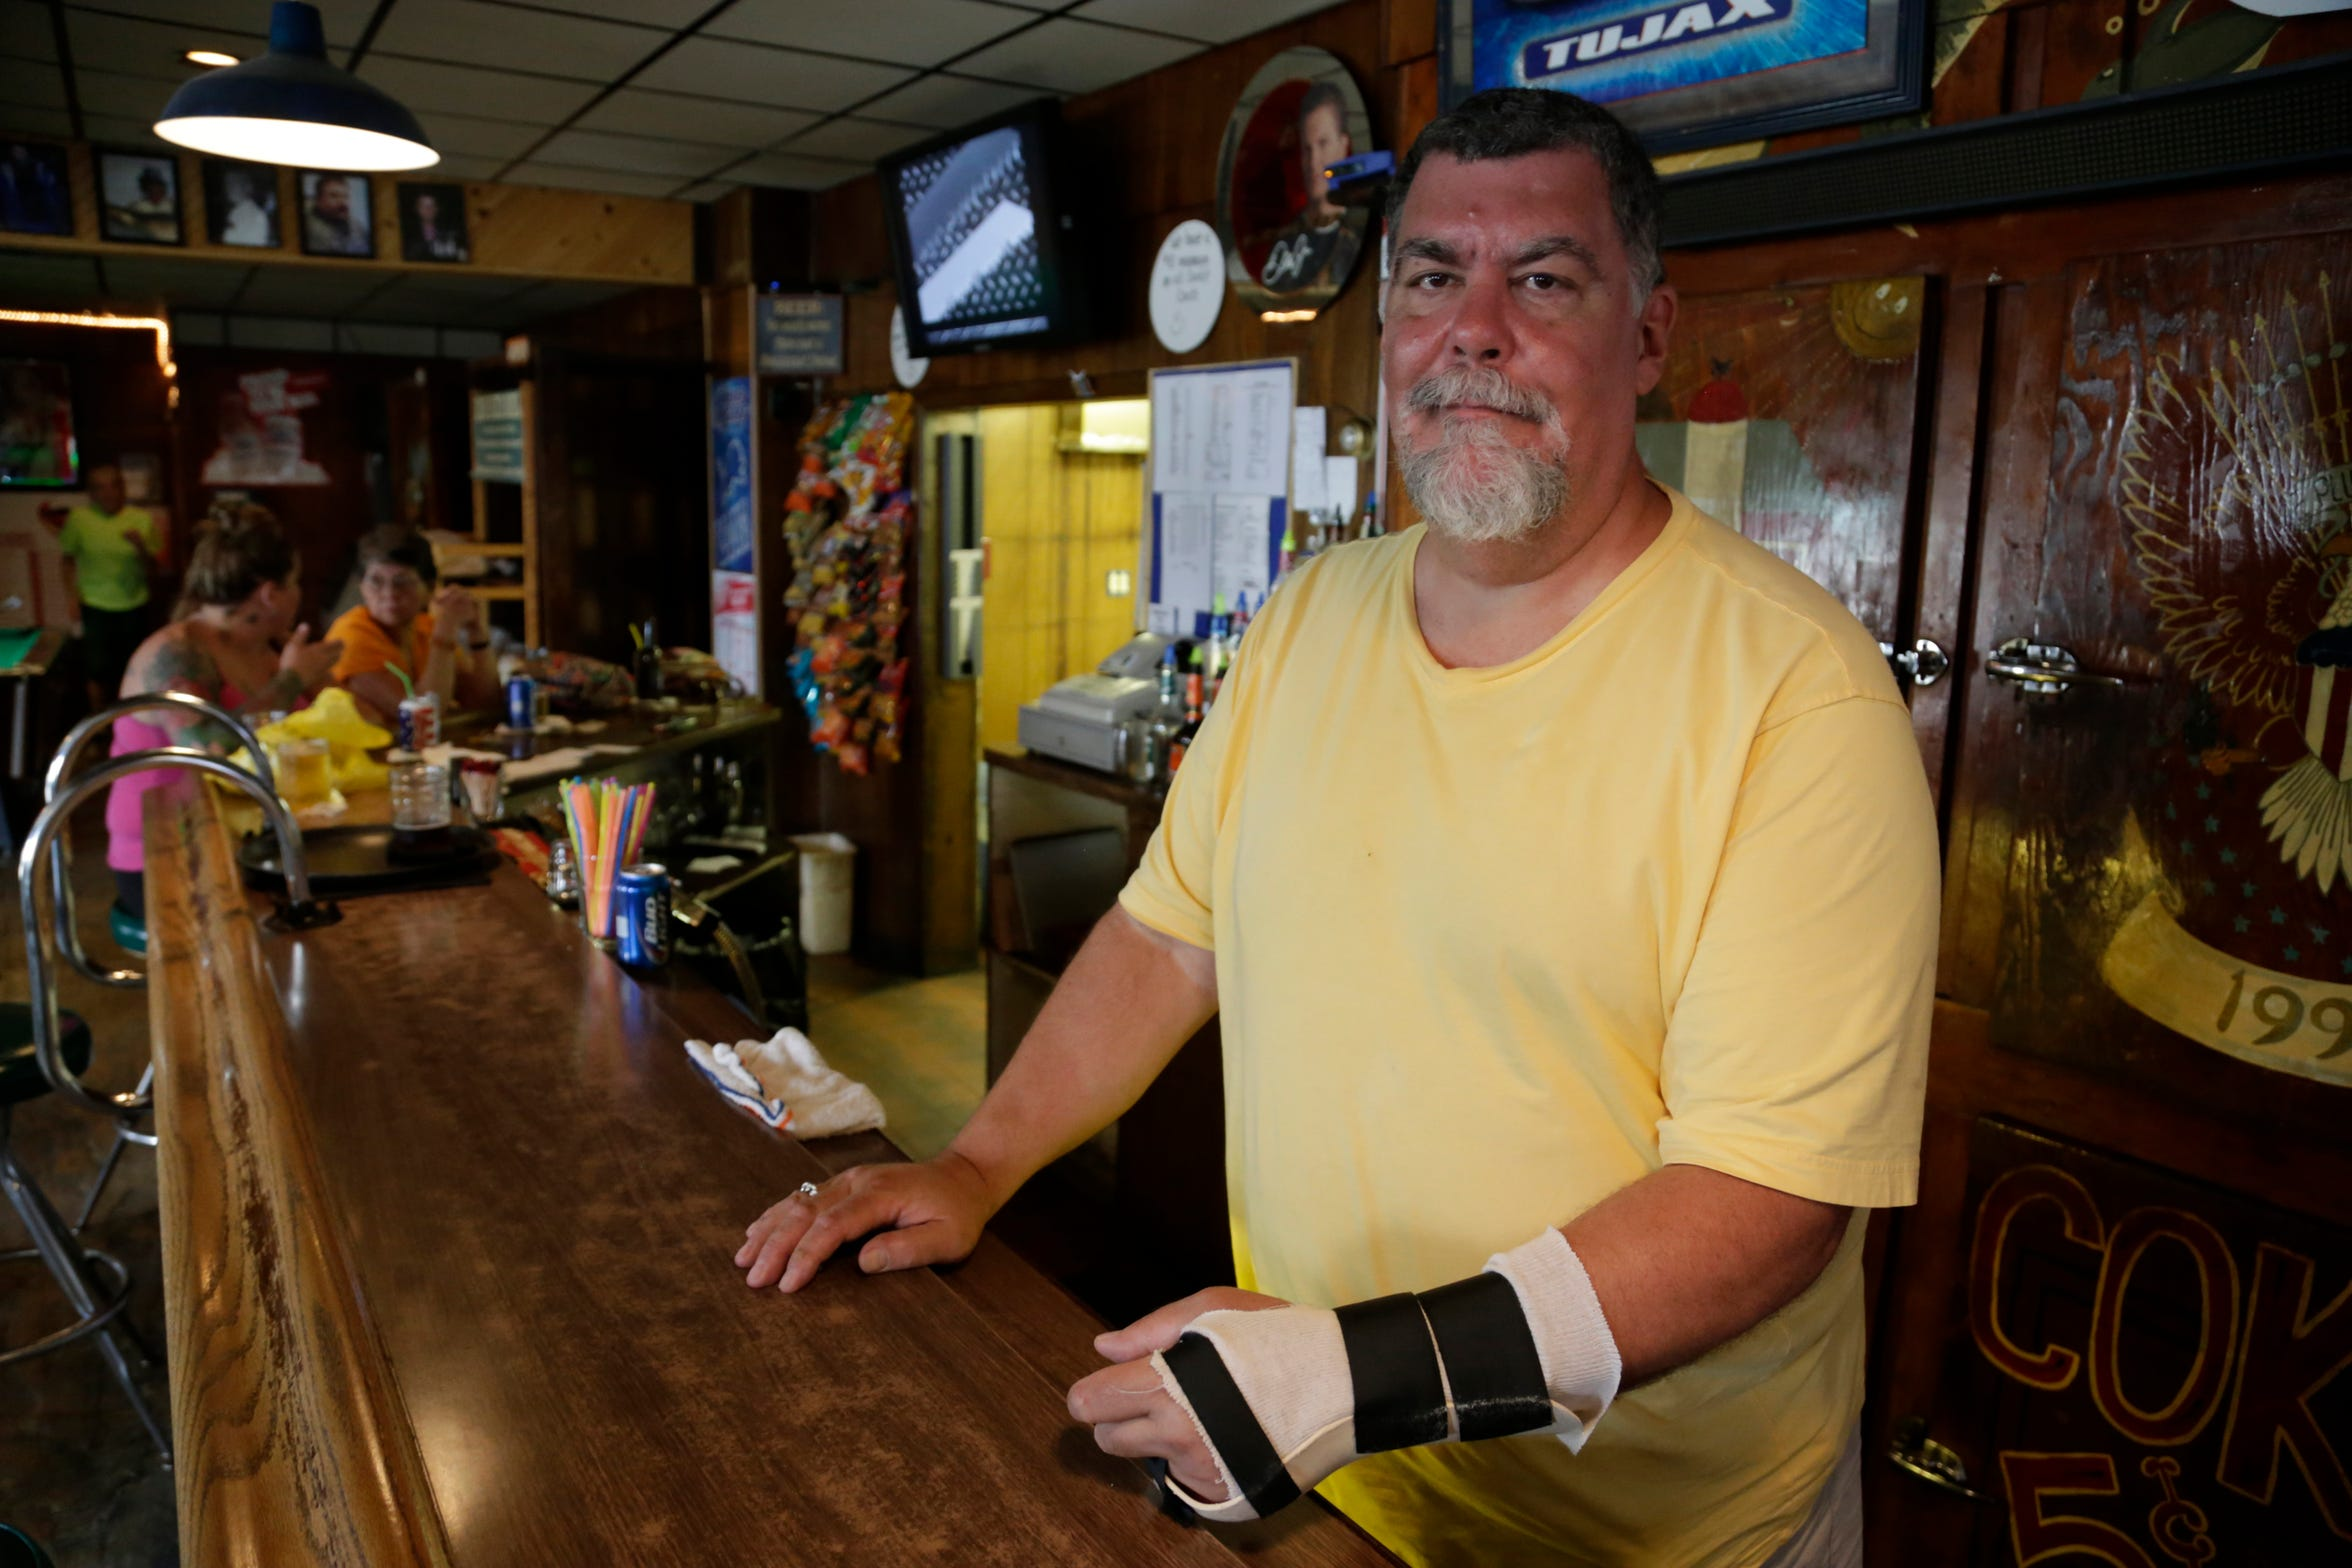 Jack Nadwornik owner of Tujax Tavern in Delton poses at his bar Wednesday June 25, 2014. Nadwornik had been celebrating his birthday when he was arrested by police in the parking lot of his bar. Police broke Nadwornik's hand, kneed himand bloodied his knees. Two of the three officers who arrested him were unpaid reserves. One of them was John Raterink, who once ran an organization identified as a hate group by the Southern Poverty Law Center.